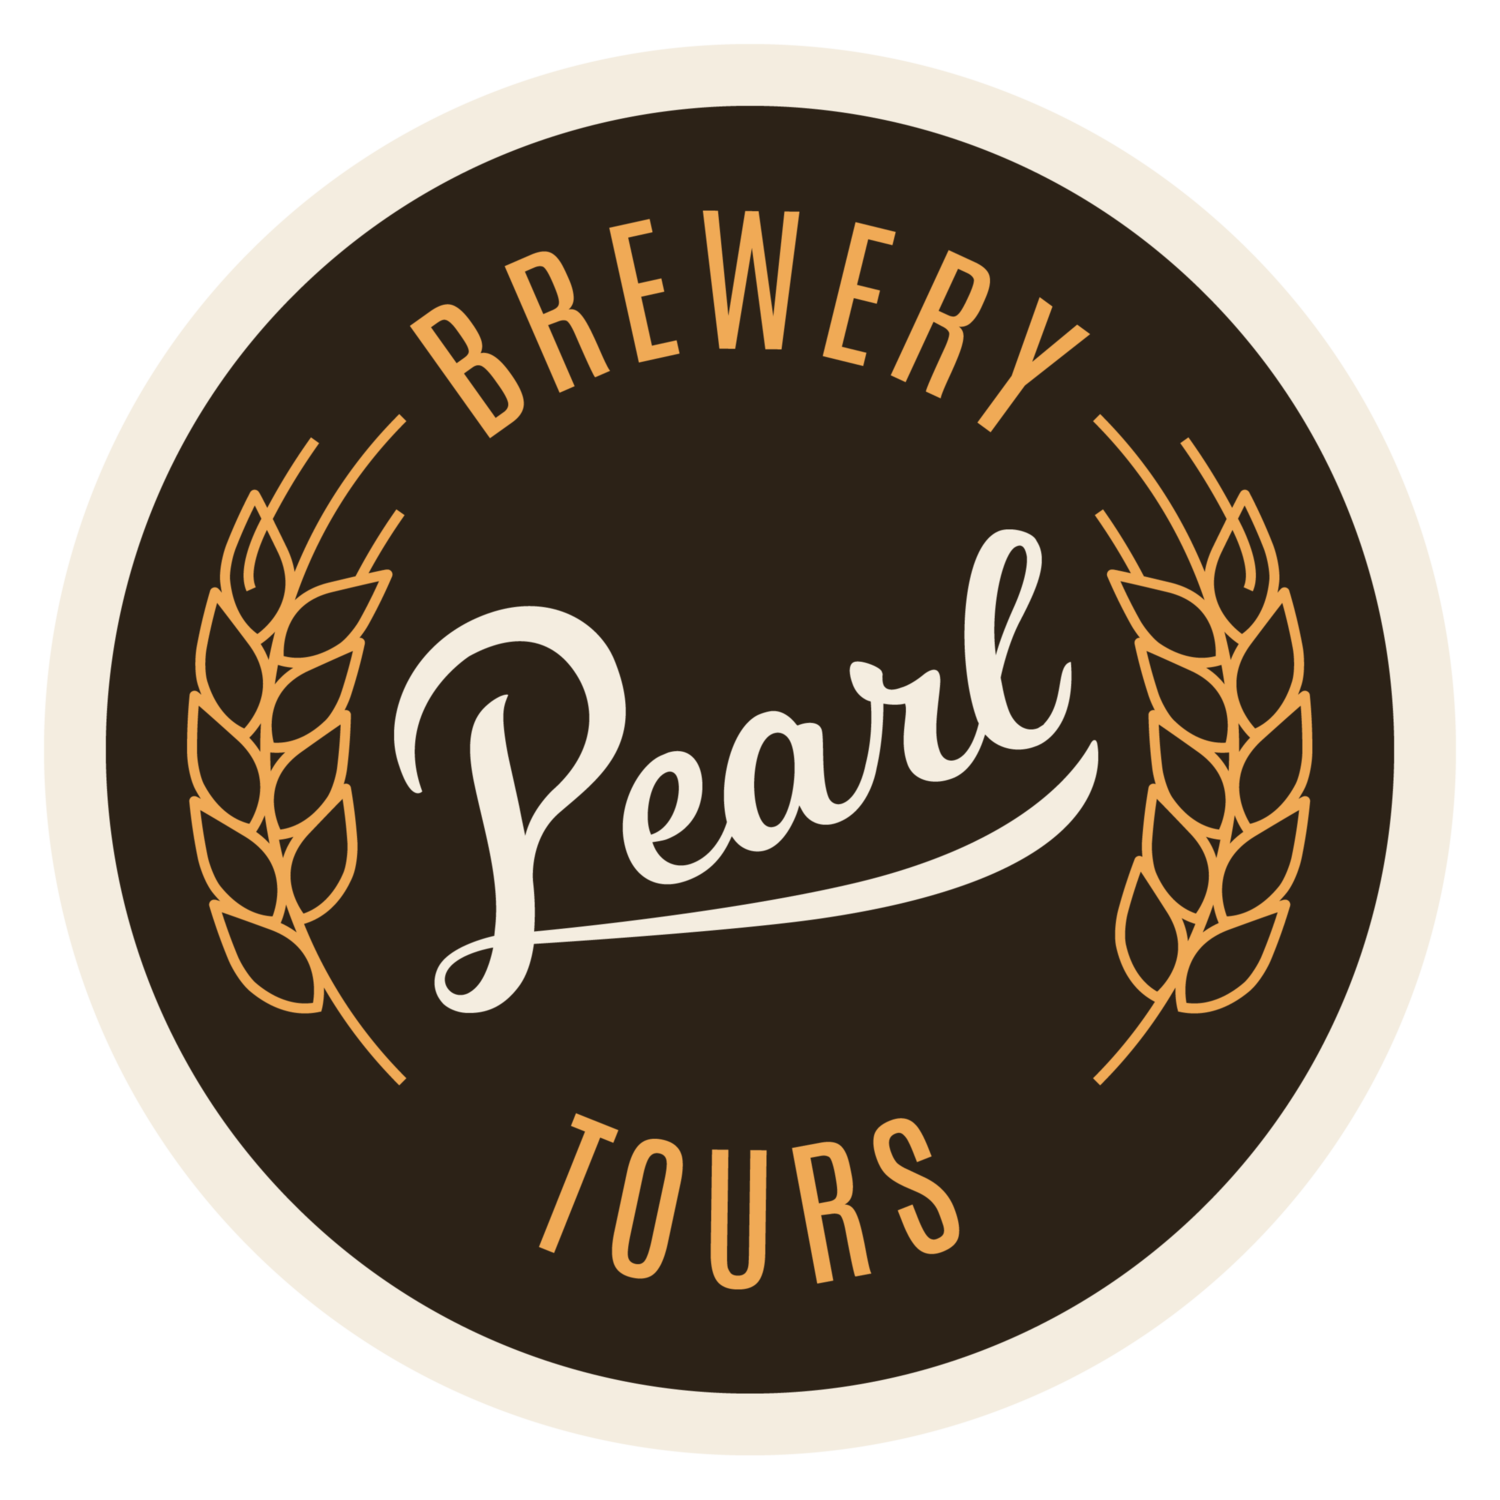 Pearl Brewery Tours - Tulsa's Brew Bus